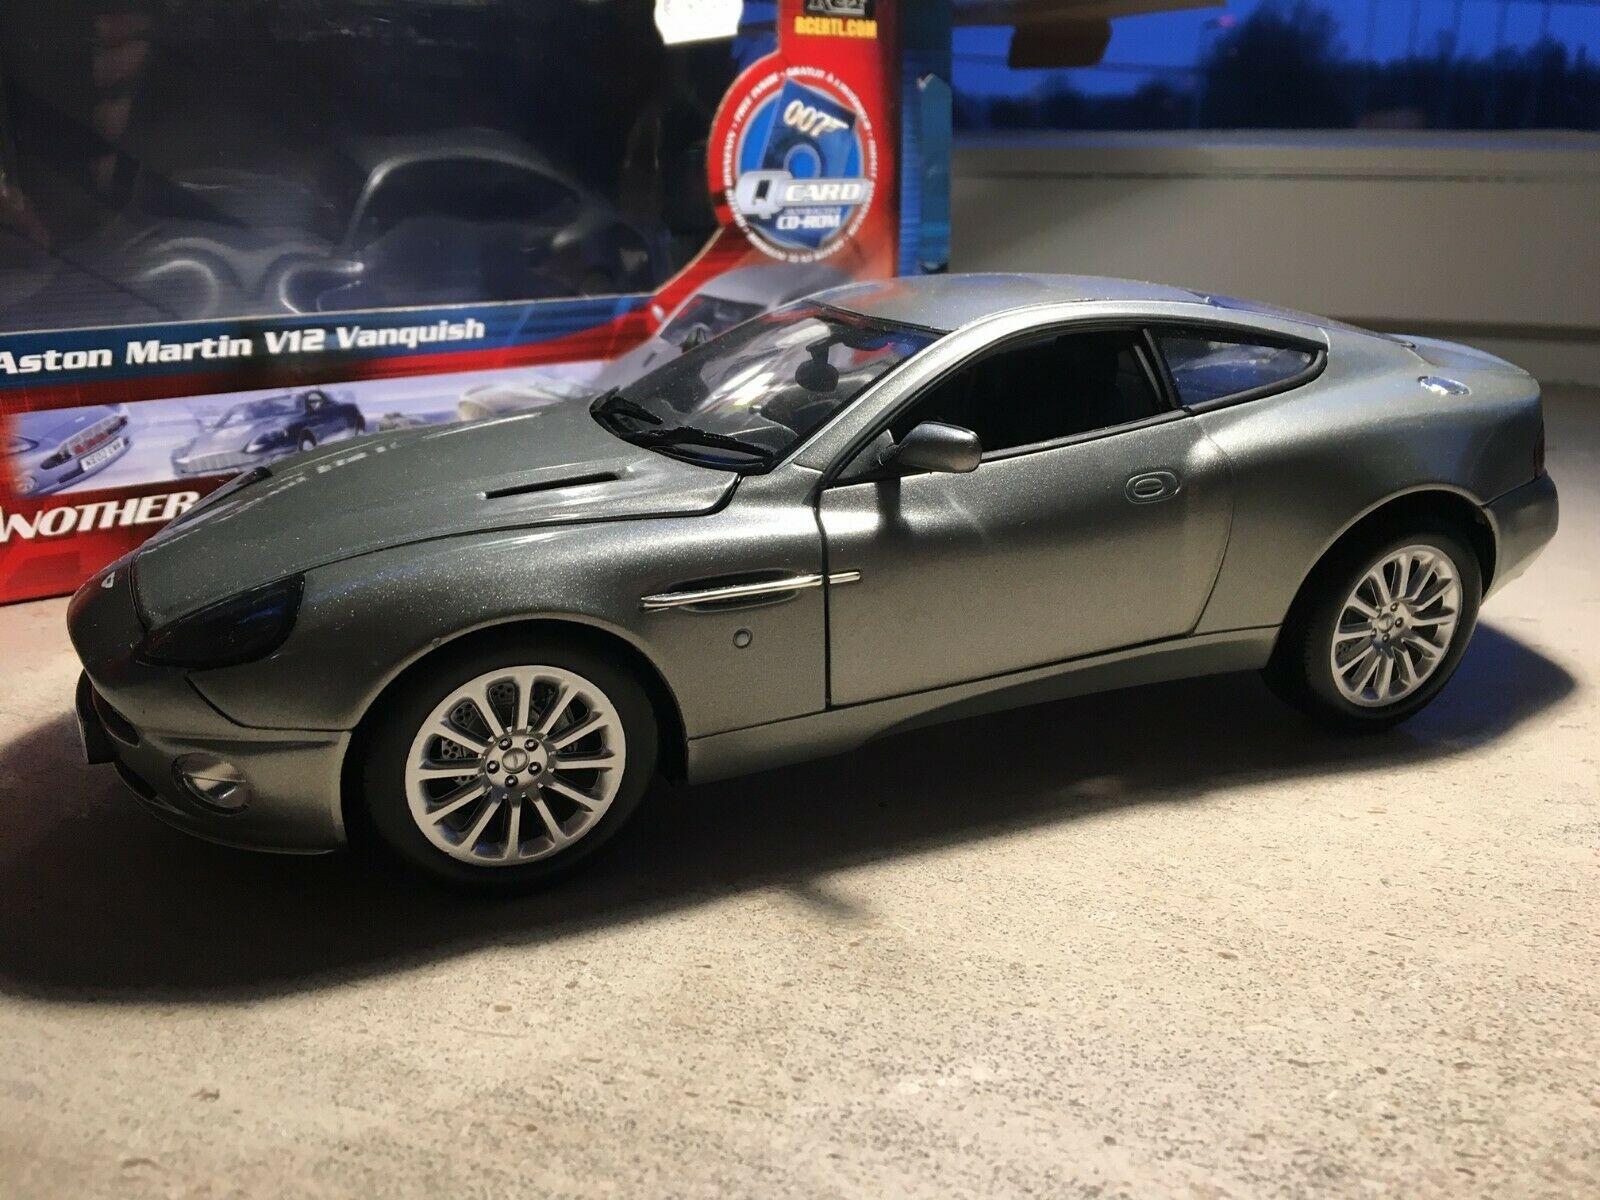 Aston Martin Vanquish james bond die another day 1 18